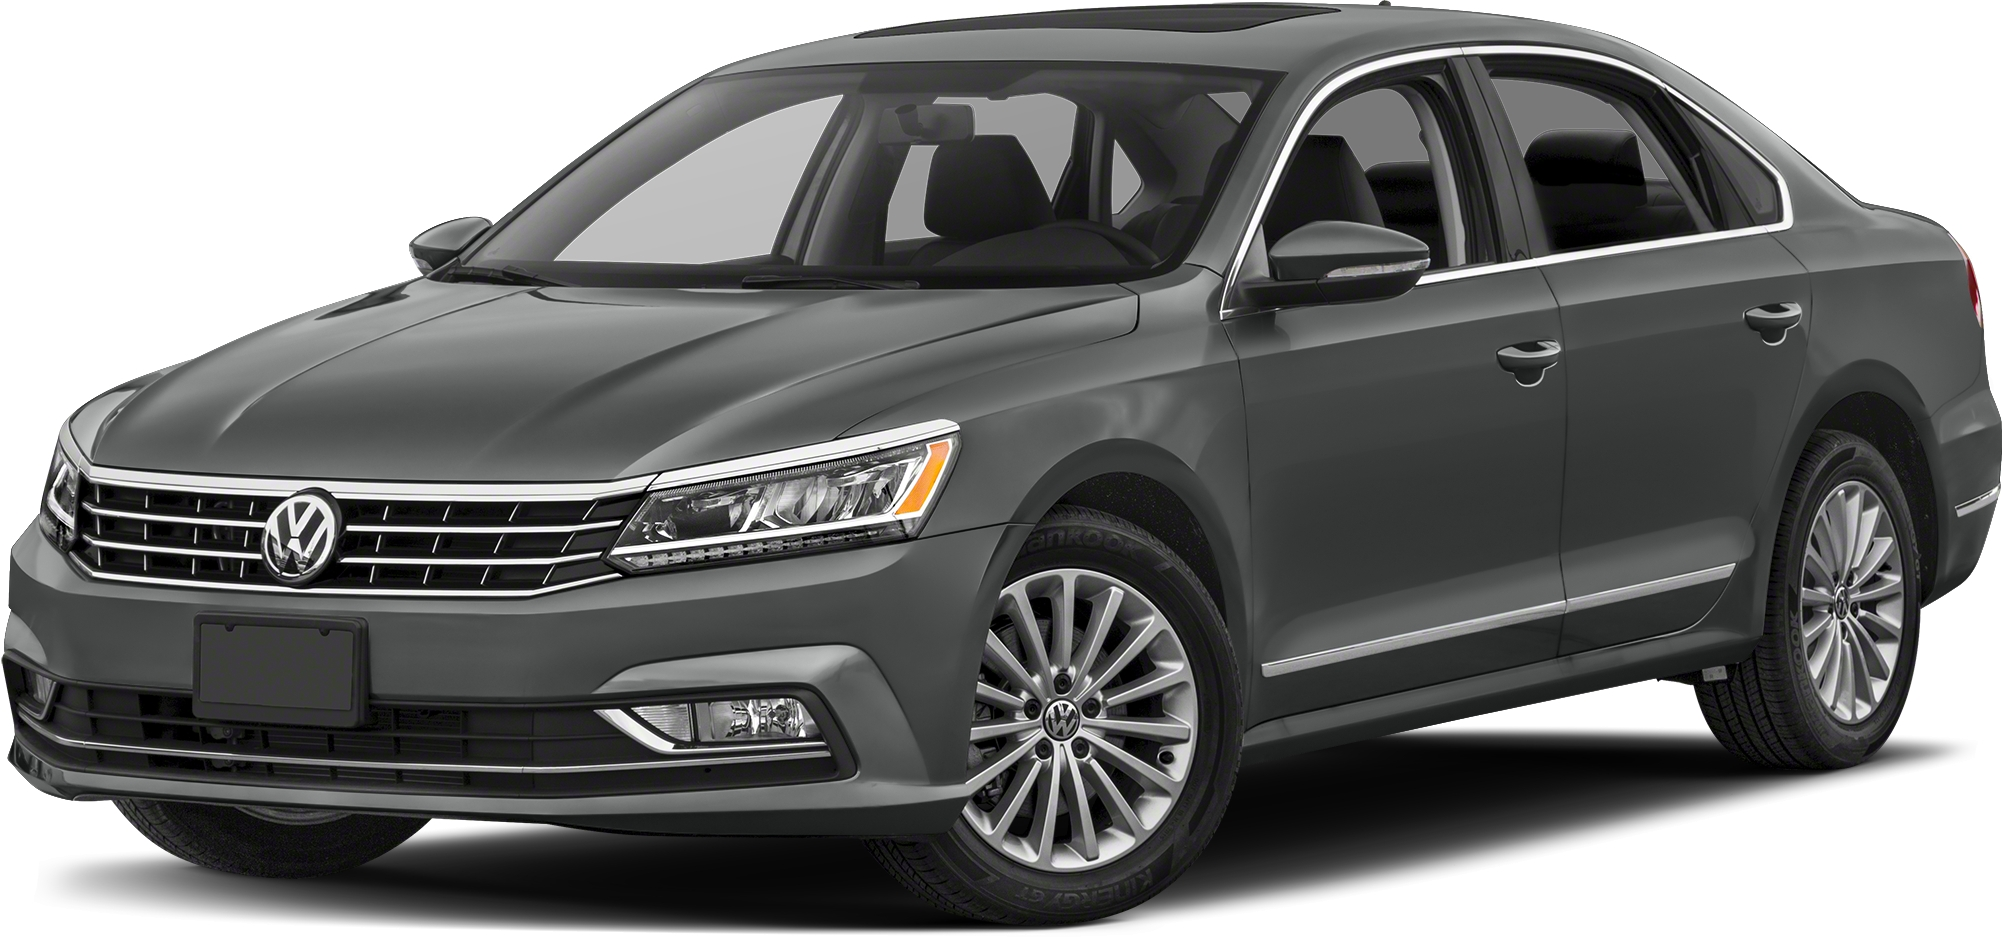 2018 volkswagen passat 2 0t se seattle wa 23651145. Black Bedroom Furniture Sets. Home Design Ideas